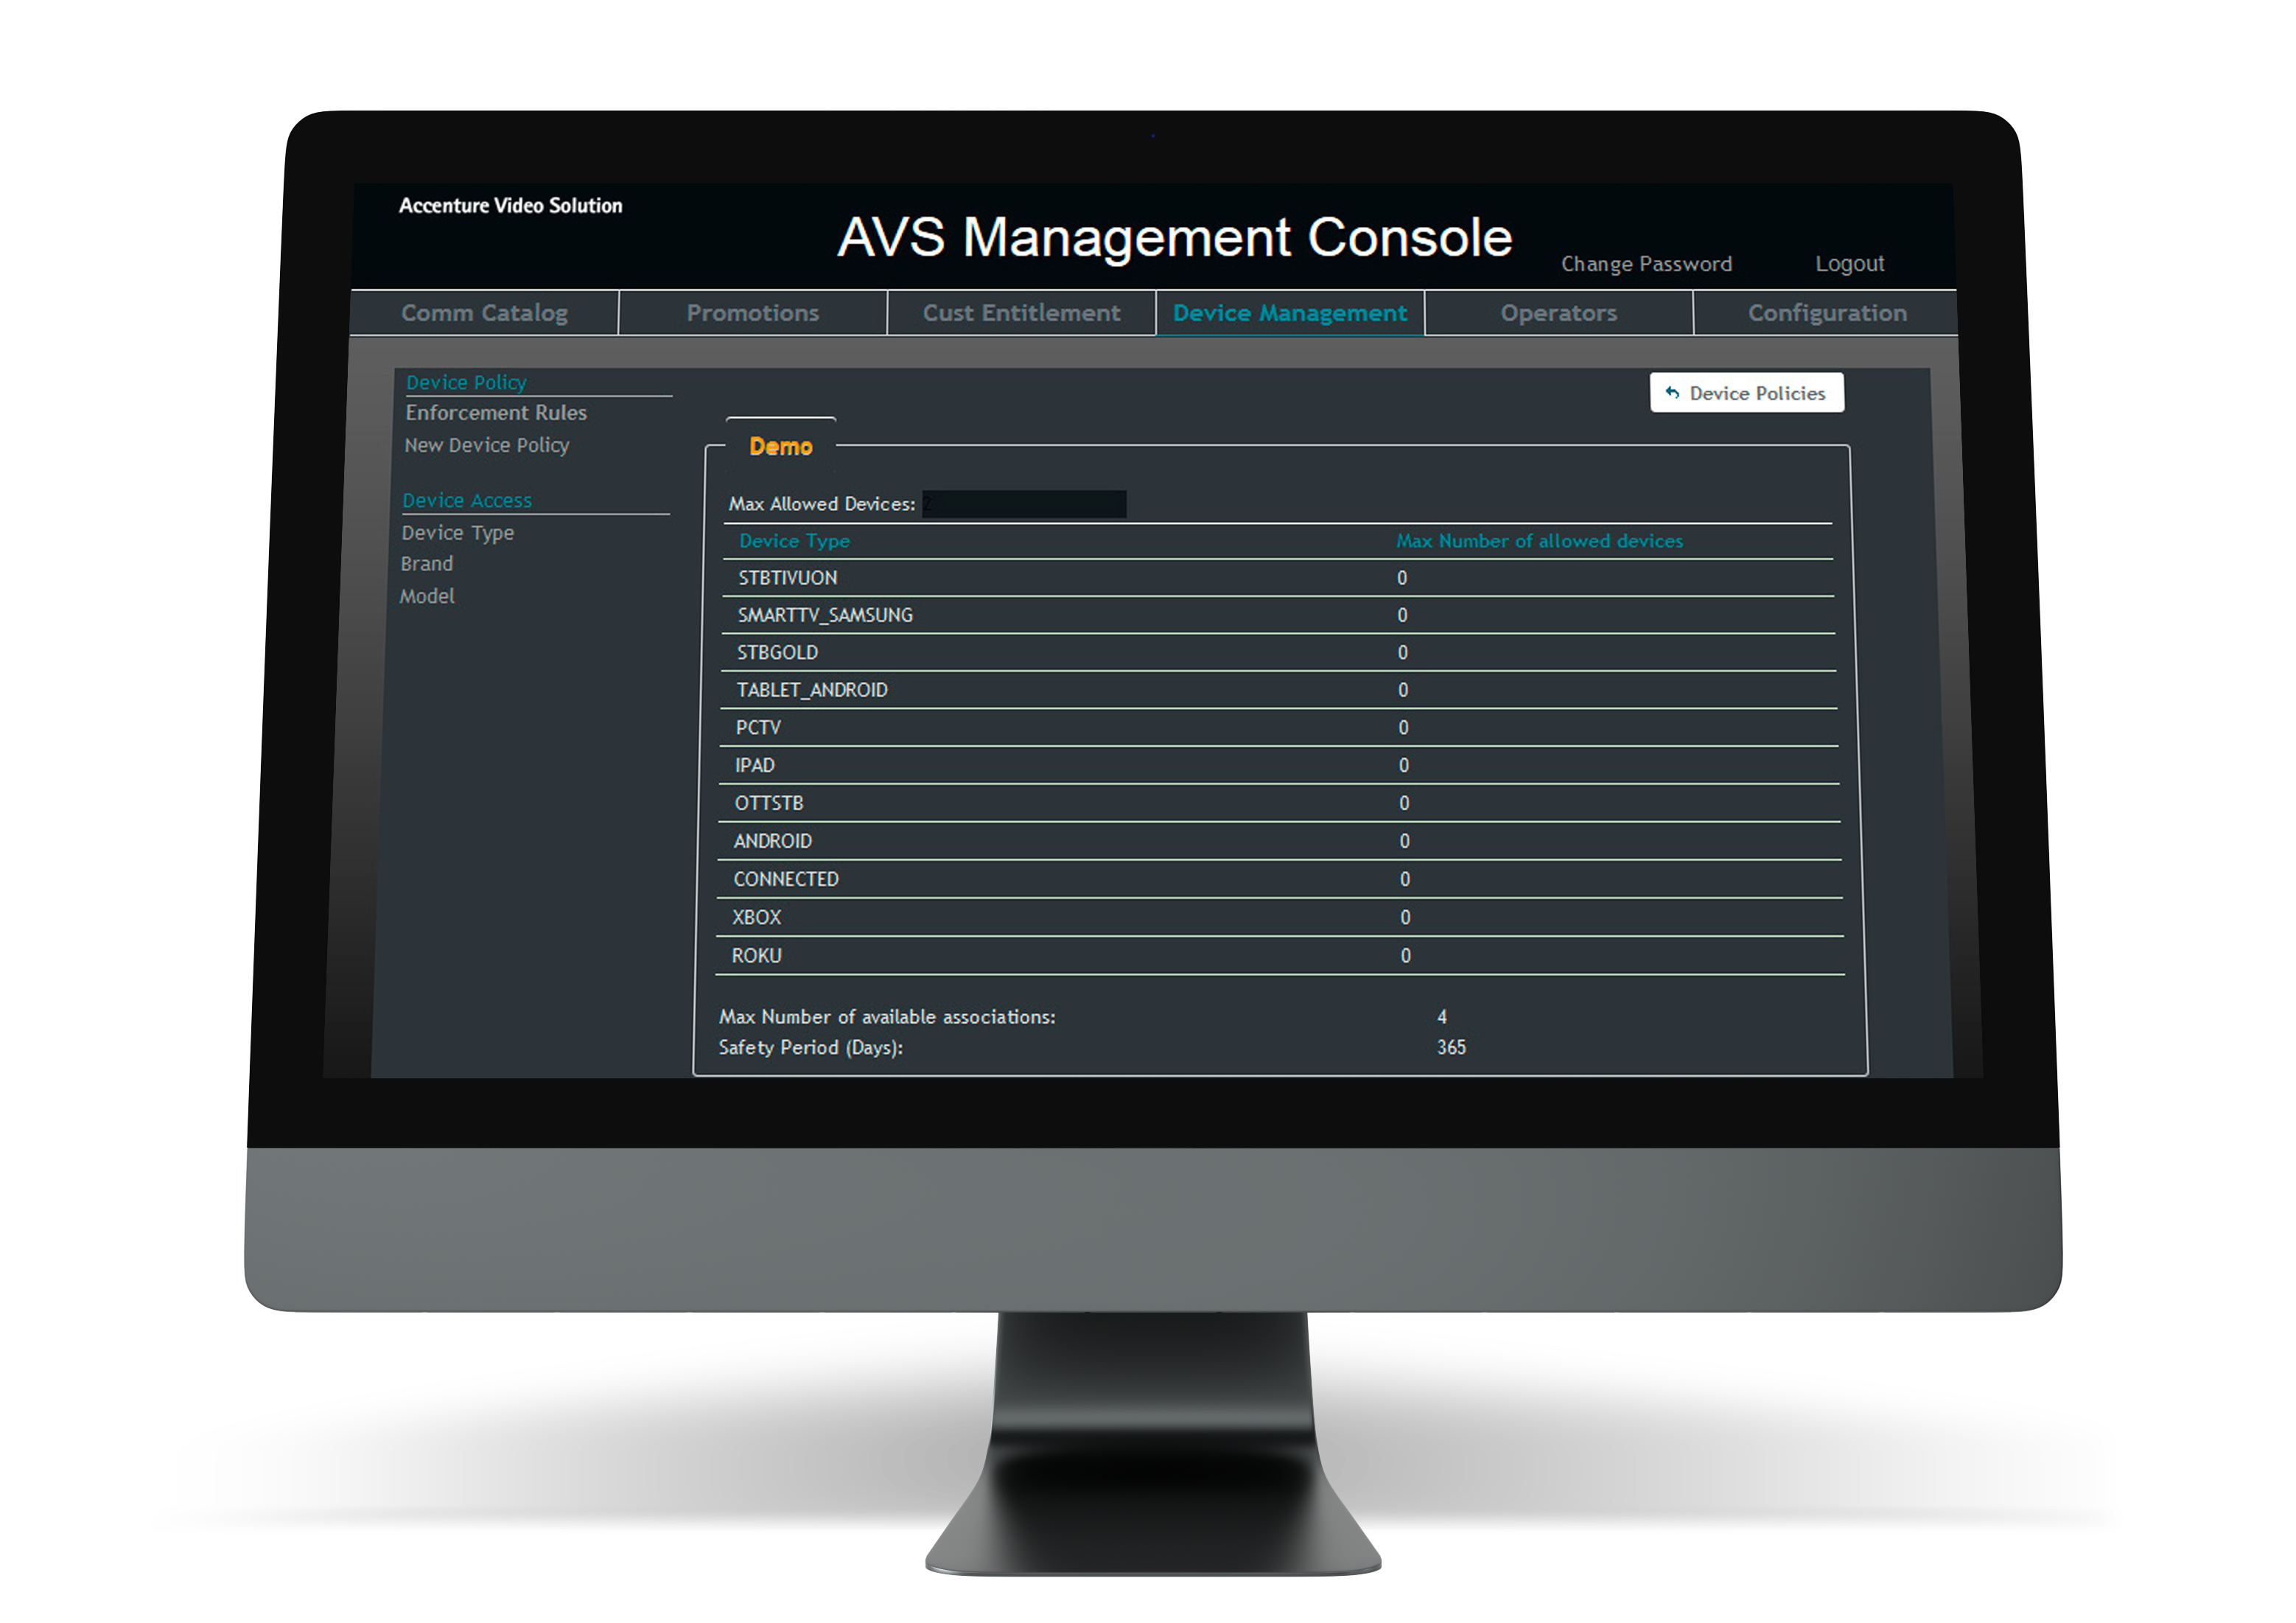 Control how your content is consumed through robust device management policies